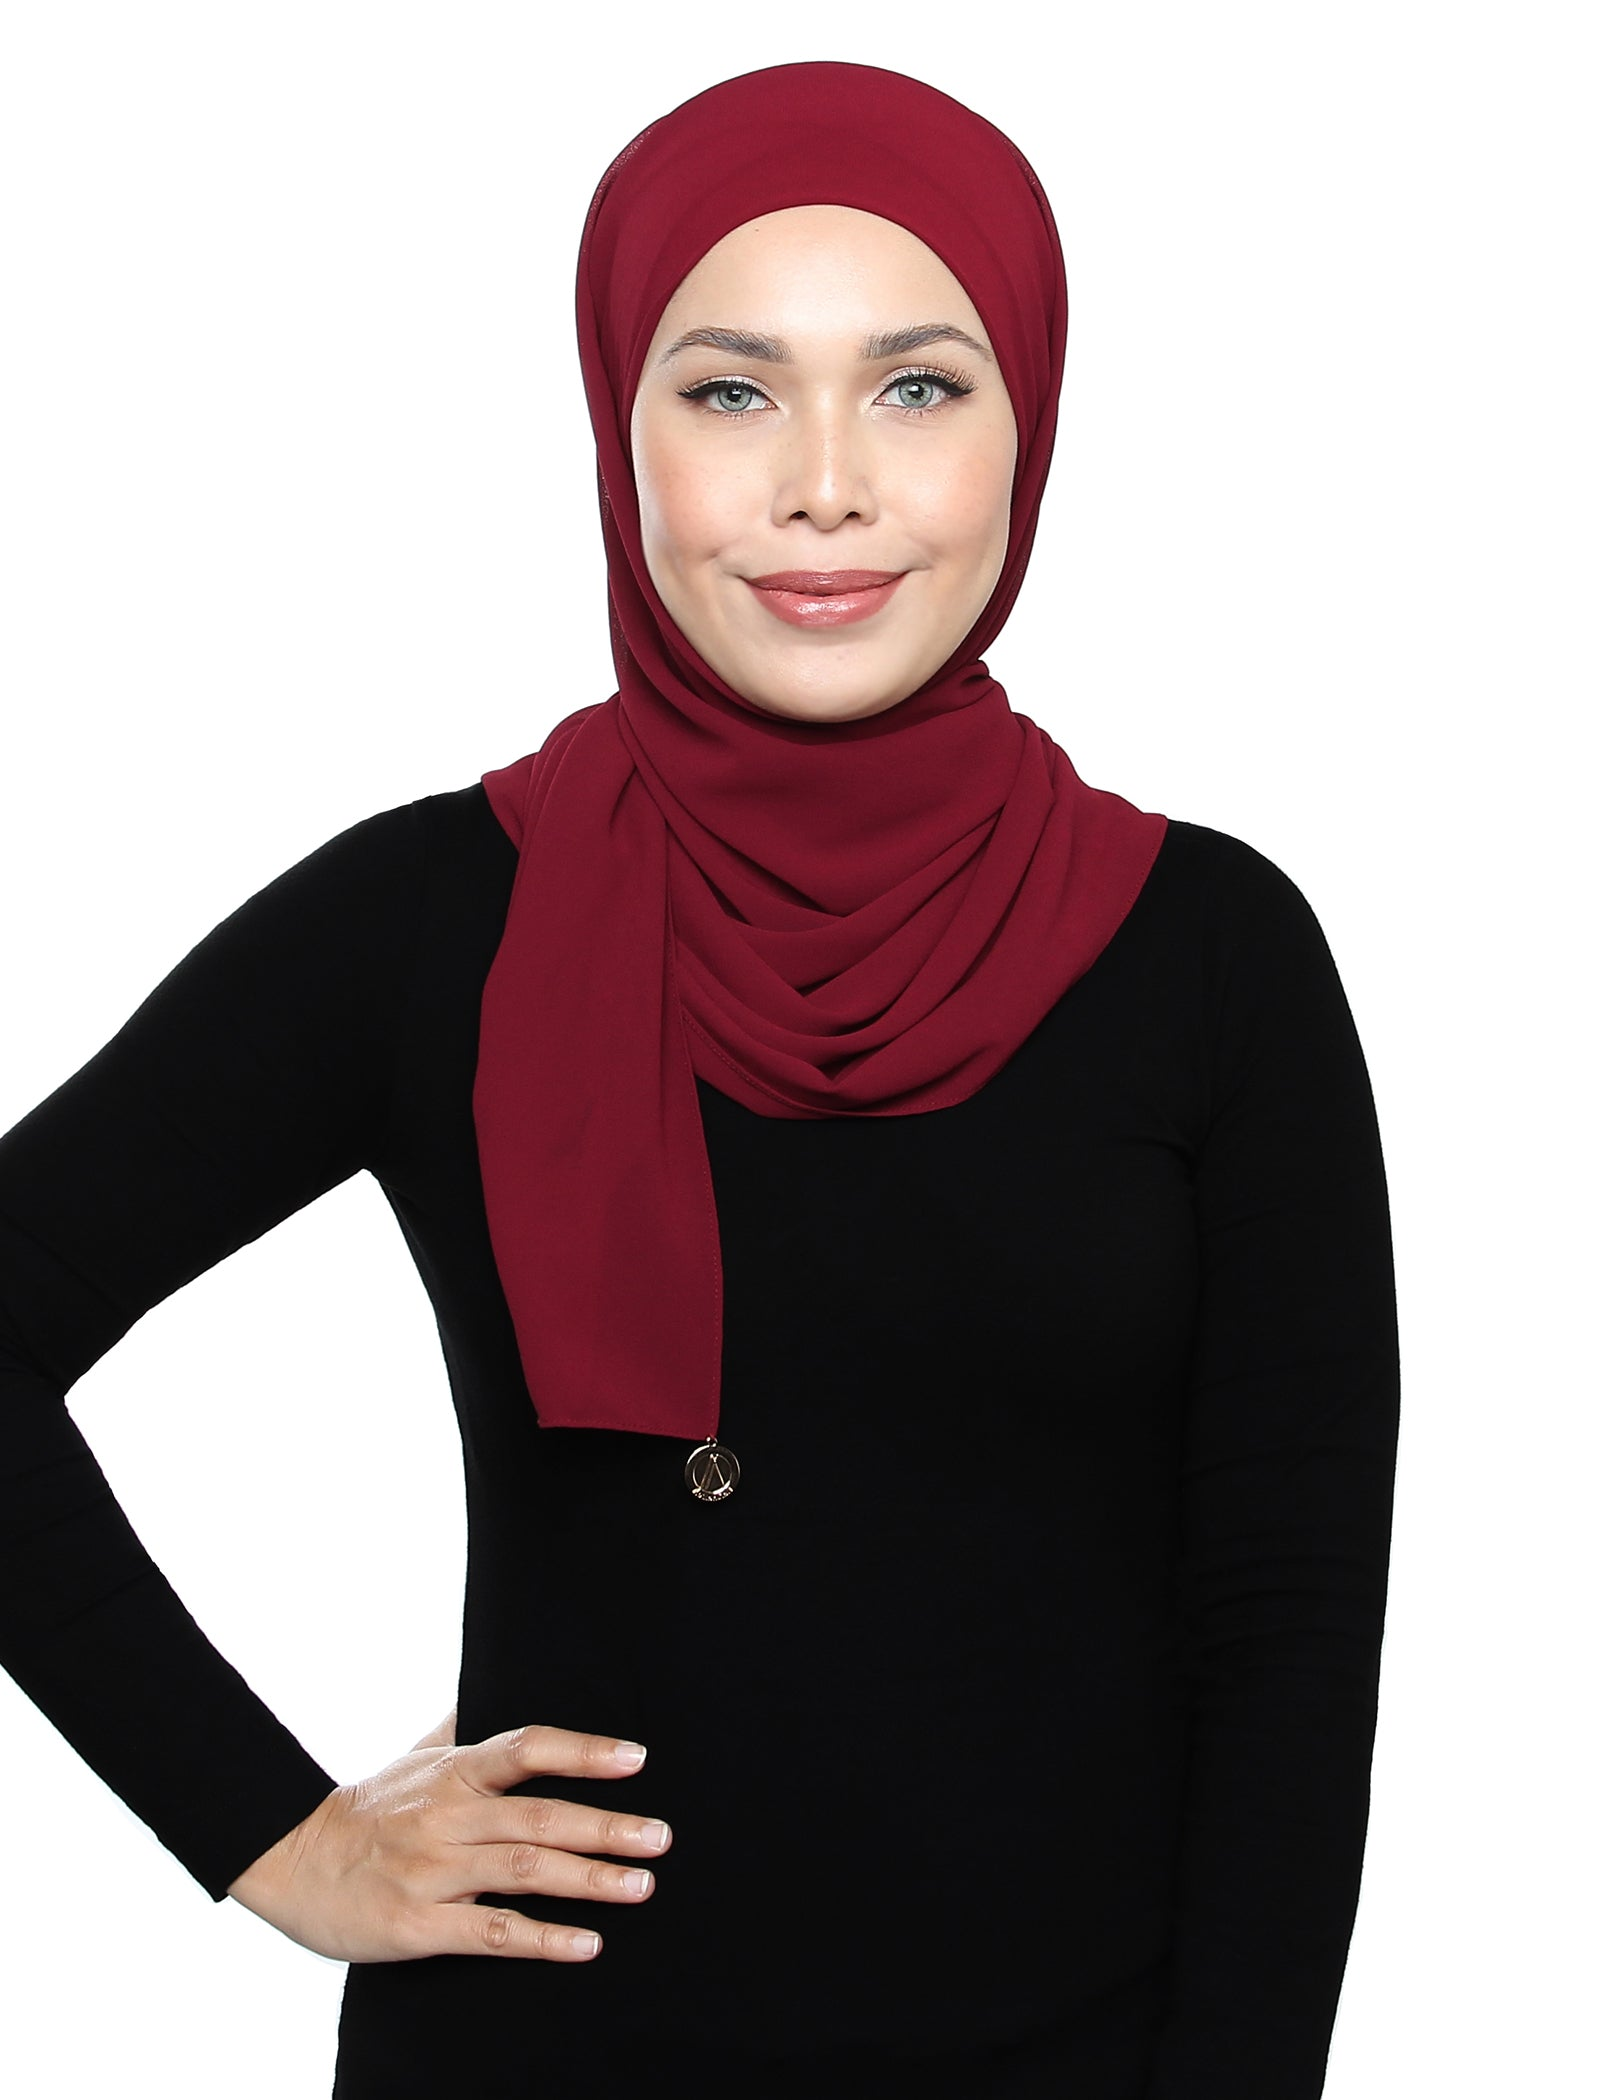 Lux Square Chiffon Shawl - Red Plum